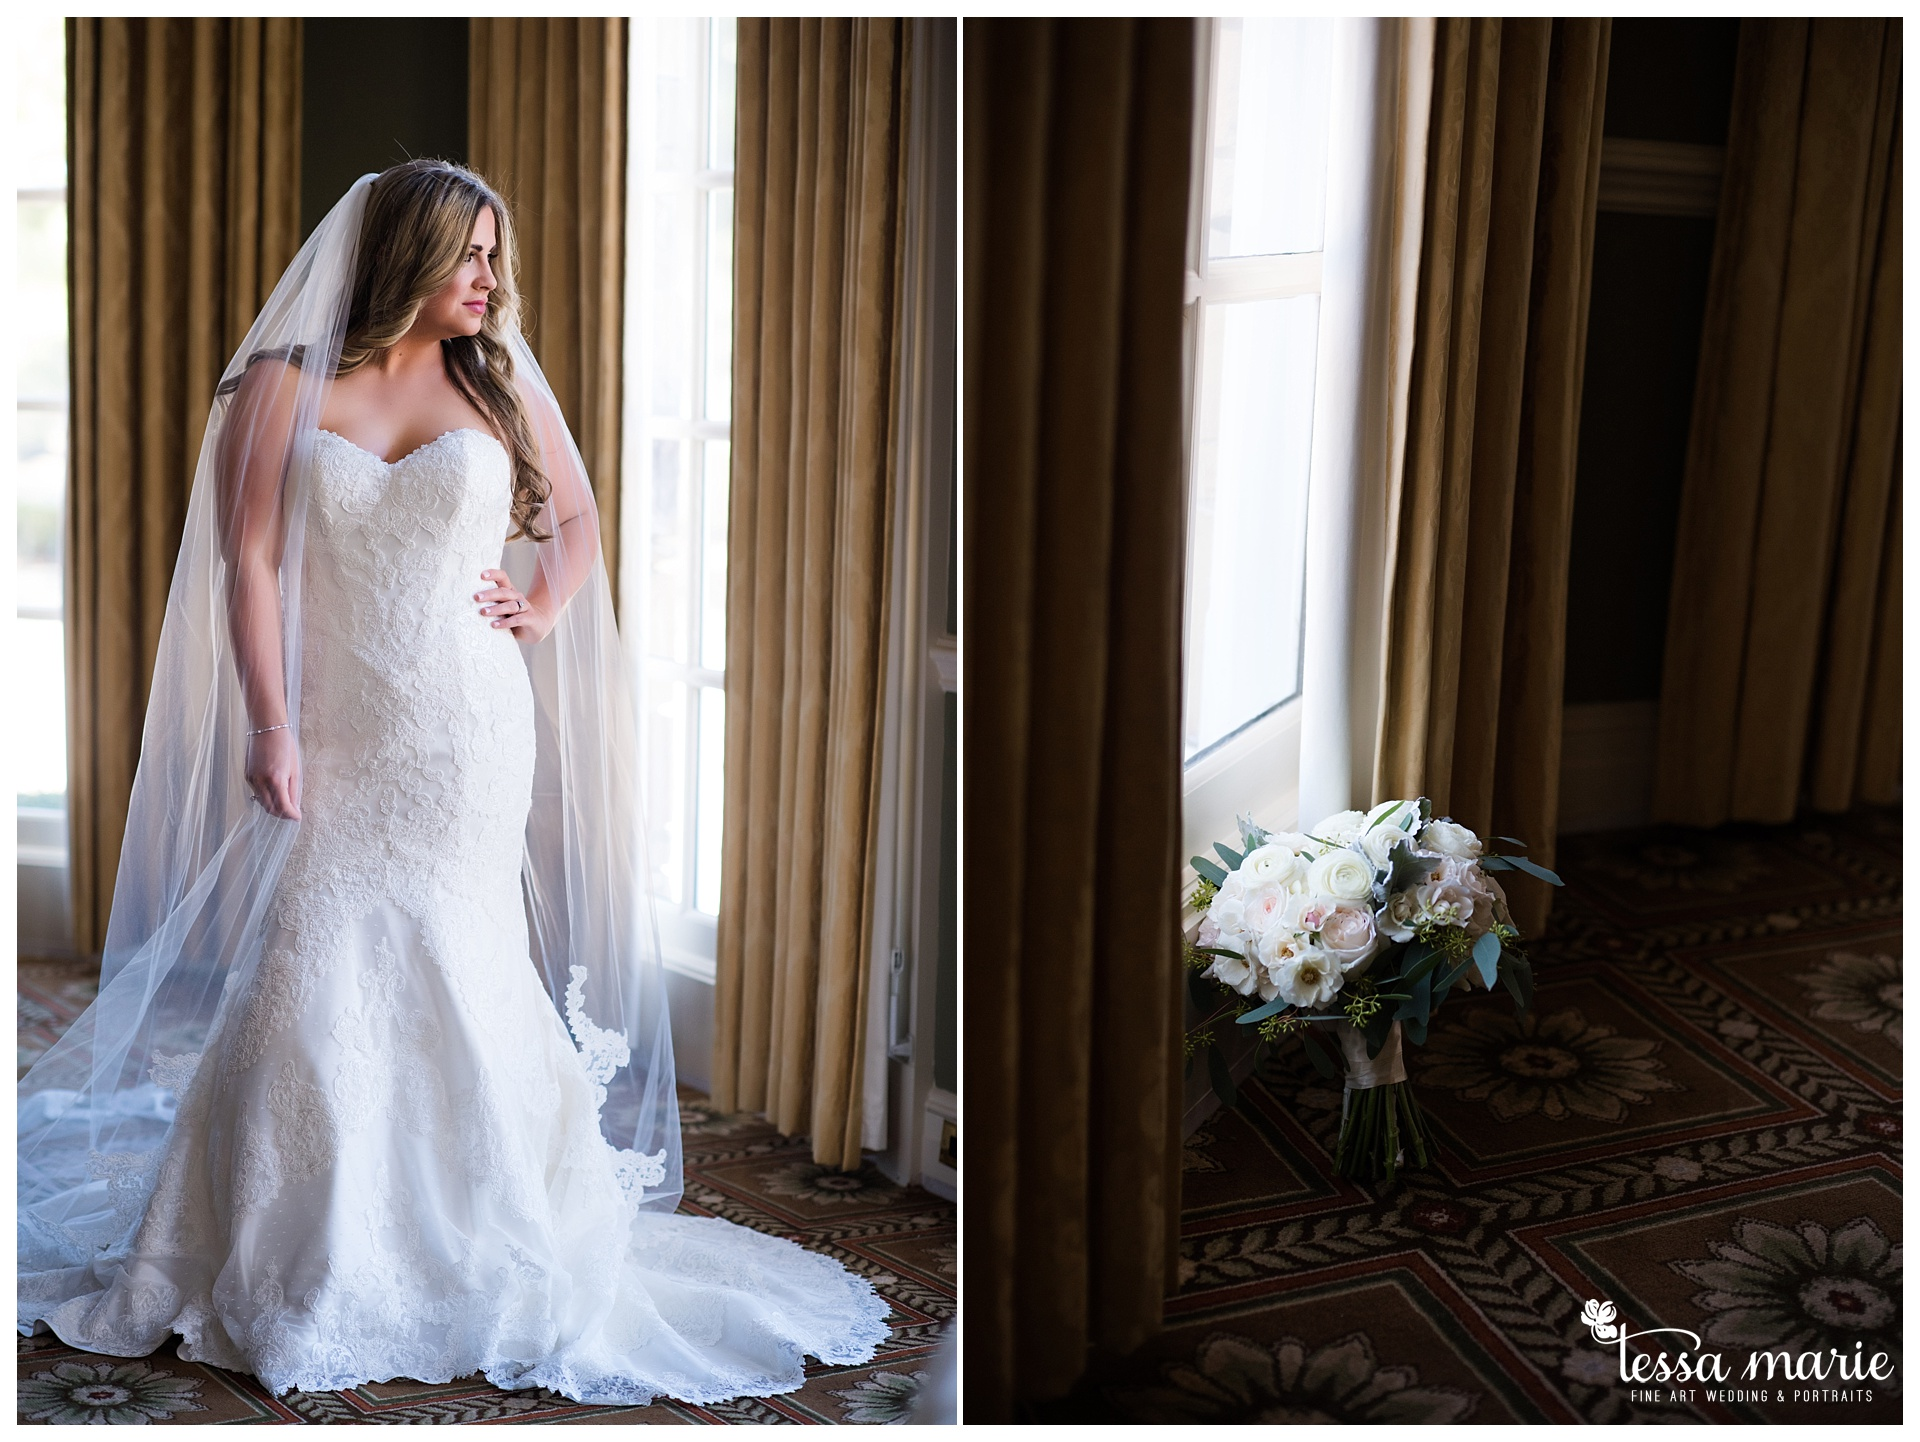 tessa_marie_weddings_legacy_story_focused_wedding_pictures_atlanta_wedding_photographer_0075